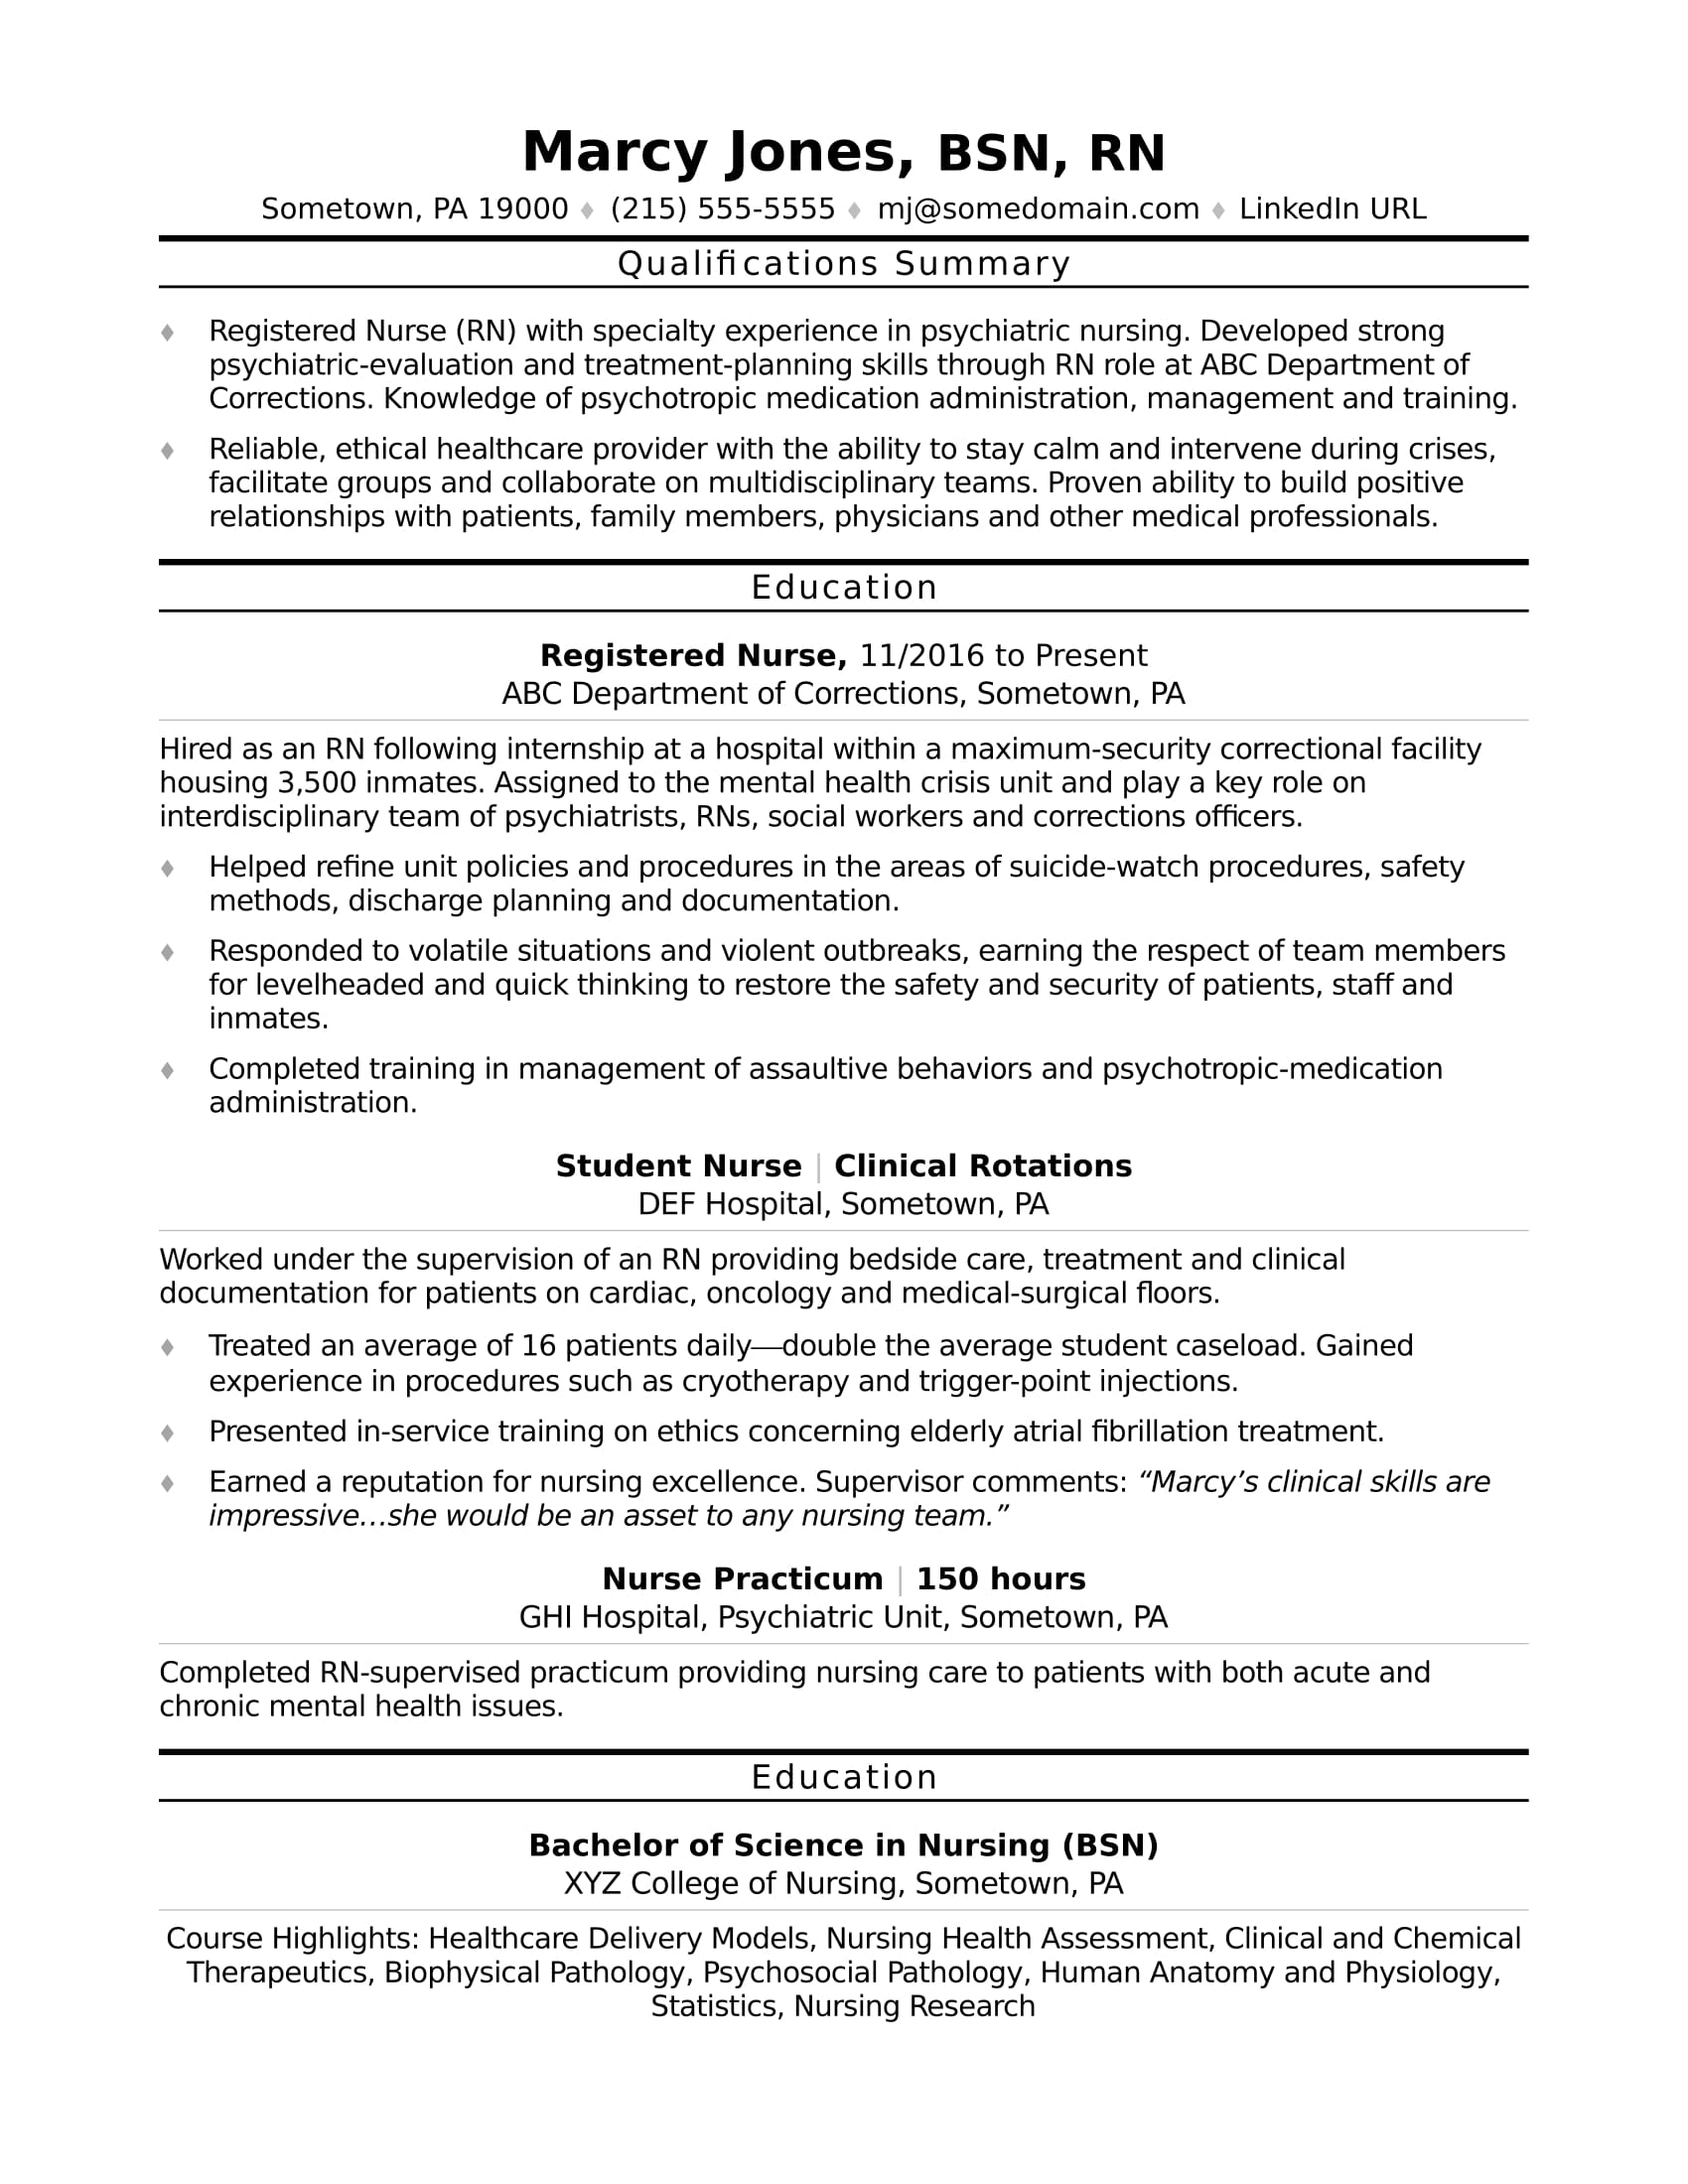 registered nurse rn resume sample monster examples for nursing jobs entry level Resume Resume Examples For Nursing Jobs